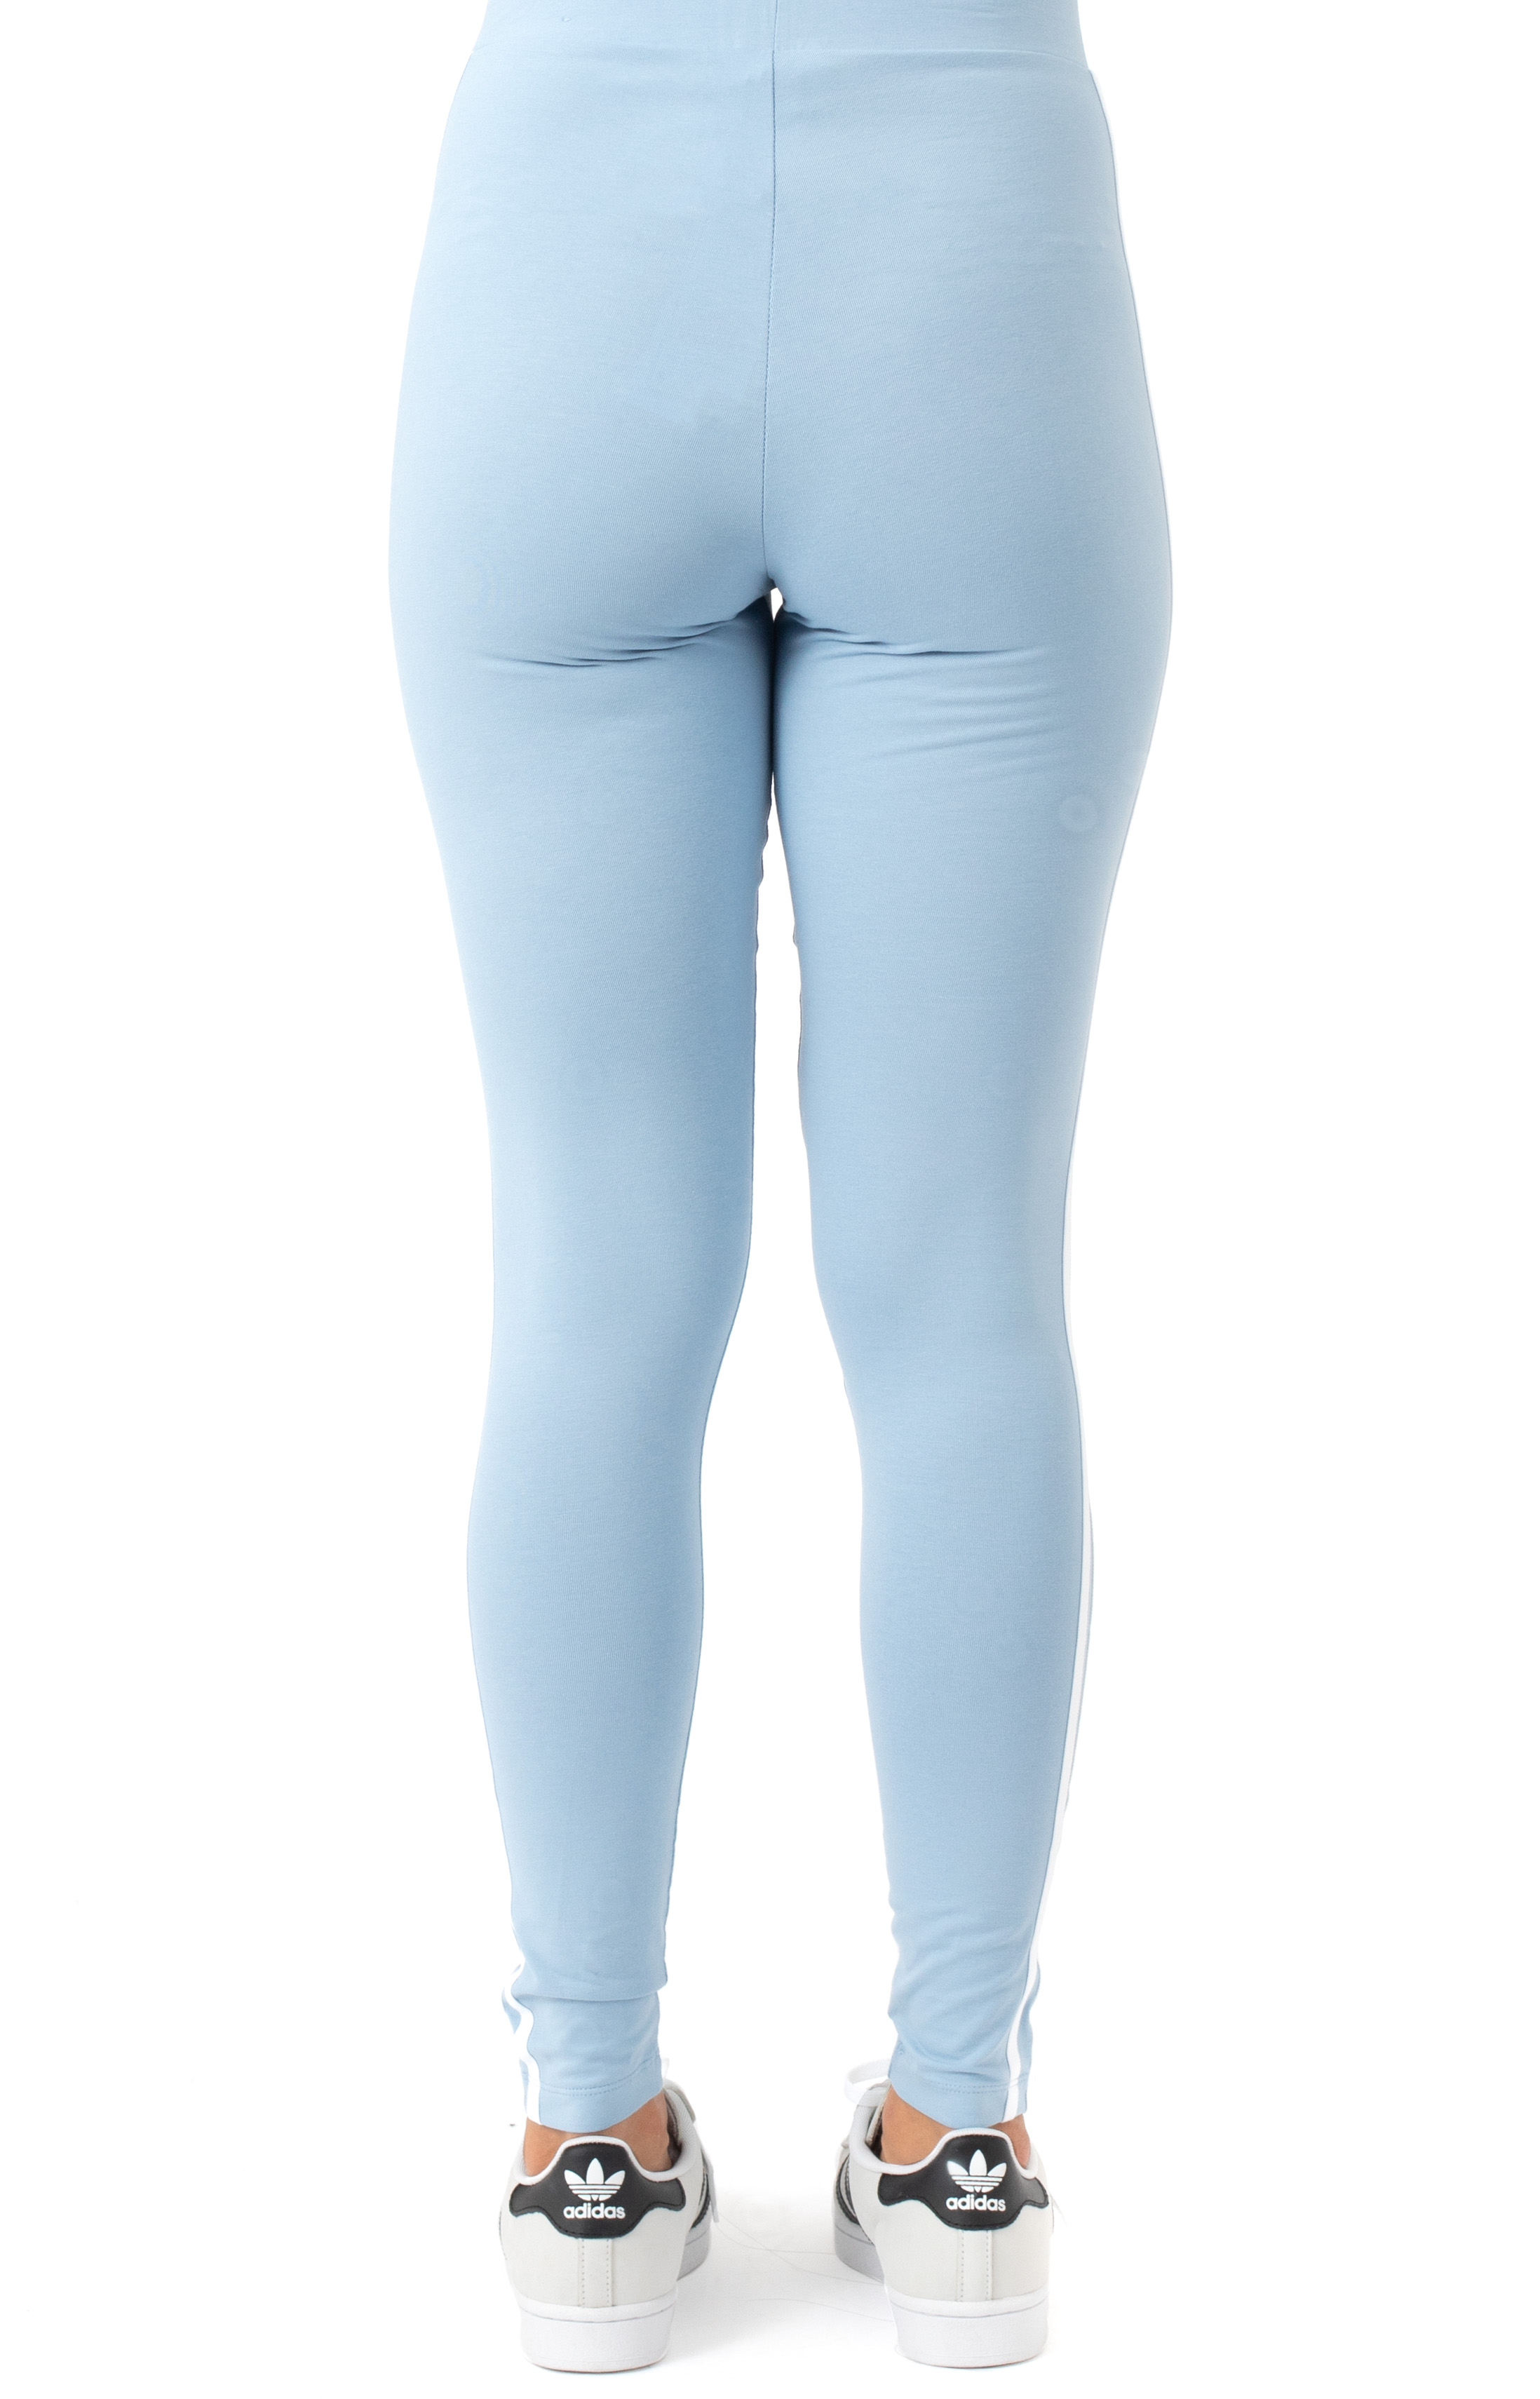 3 Stripes Tights - Ambient Sky  3